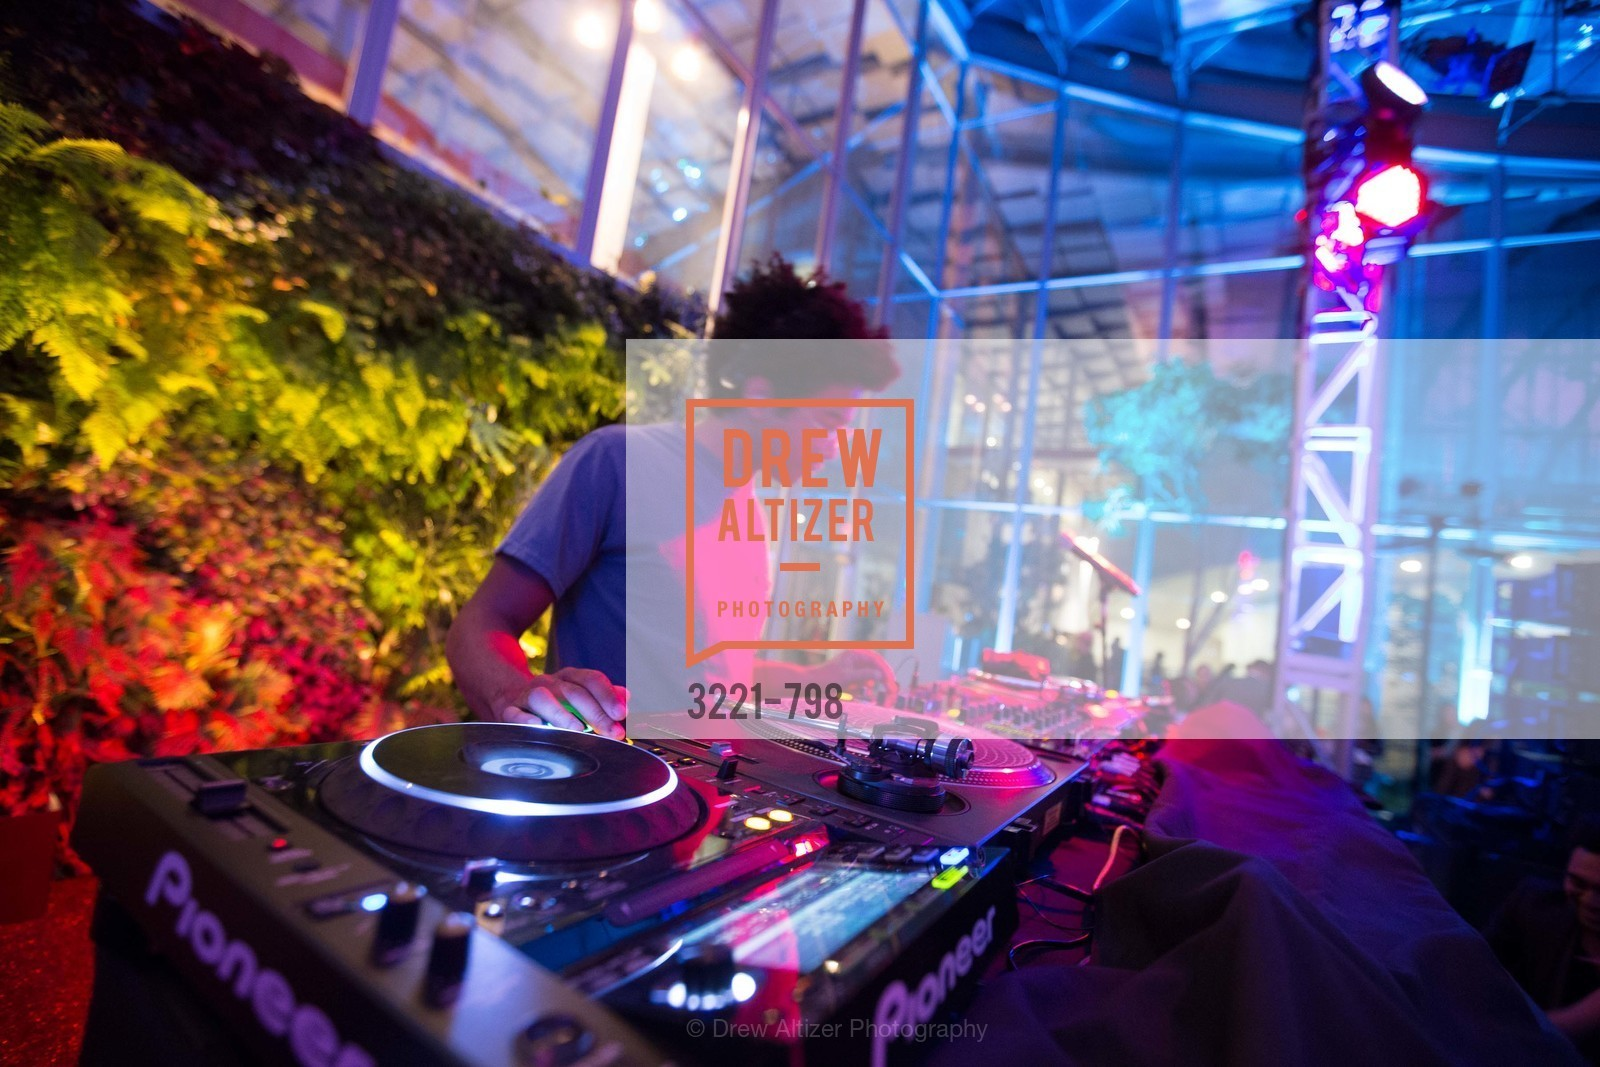 DJ Toro Y Moi, CALIFORNIA ACADEMY OF SCIENCES - Big Bang Gala 2015, US, April 23rd, 2015,Drew Altizer, Drew Altizer Photography, full-service agency, private events, San Francisco photographer, photographer california